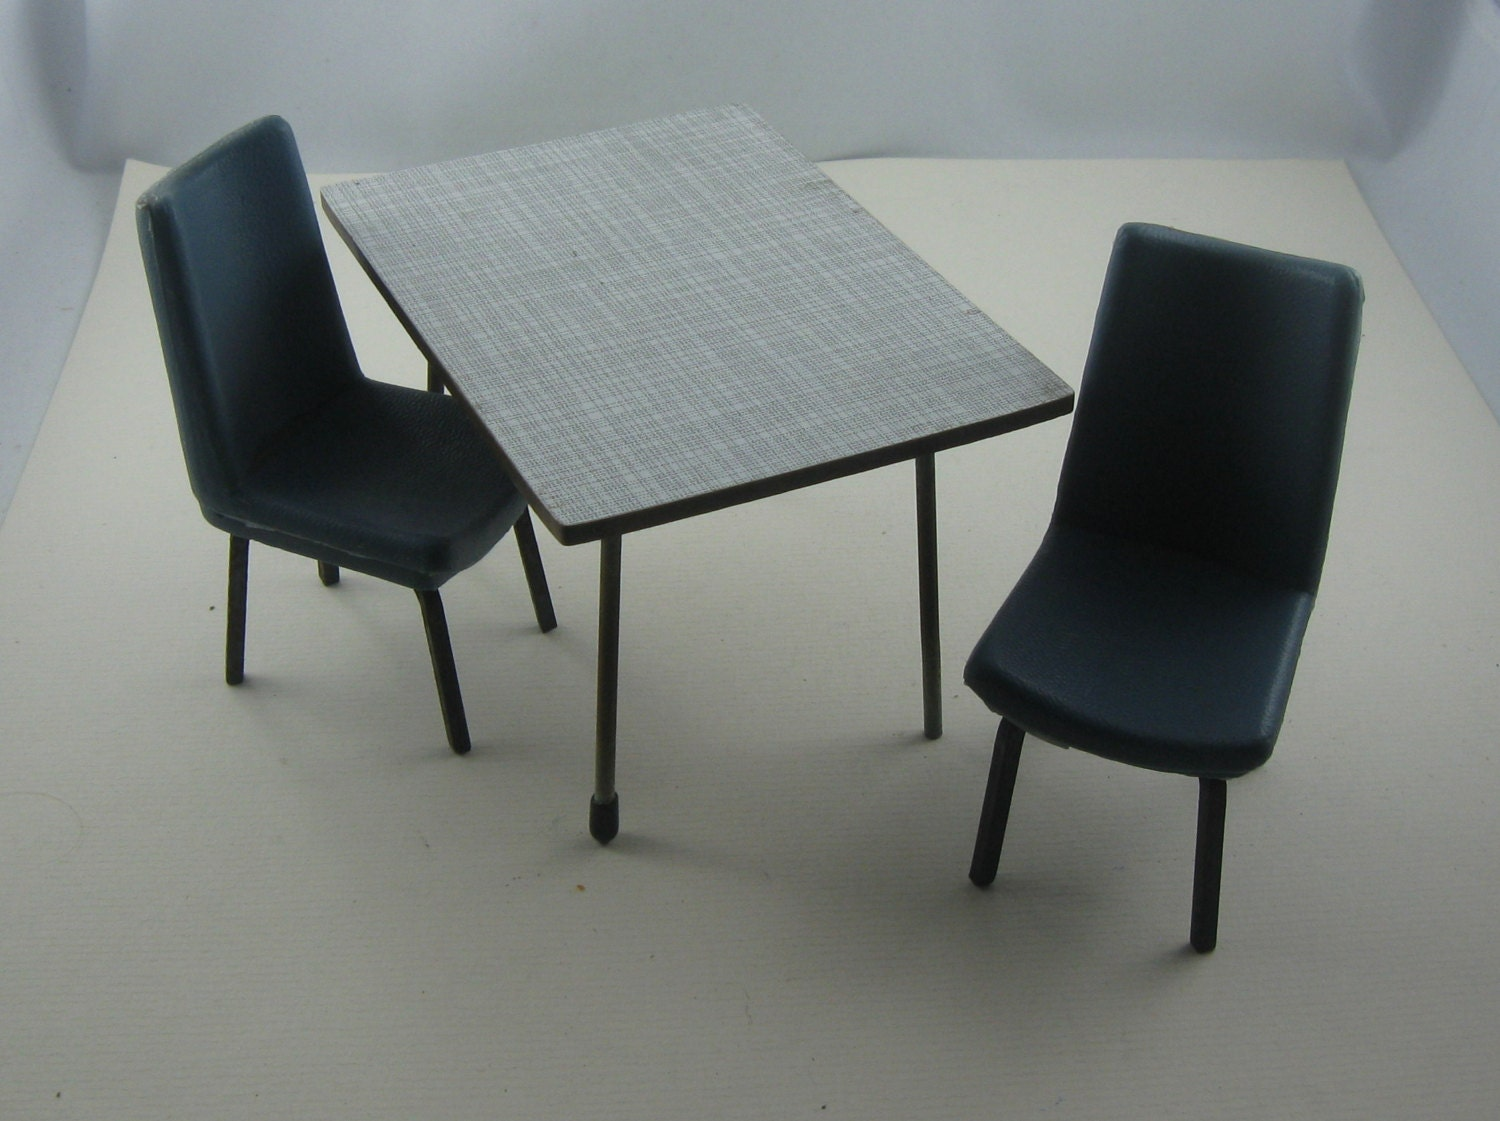 20 off dollhouse dining room furniture kitchen furniture - Dollhouse dining room furniture ...